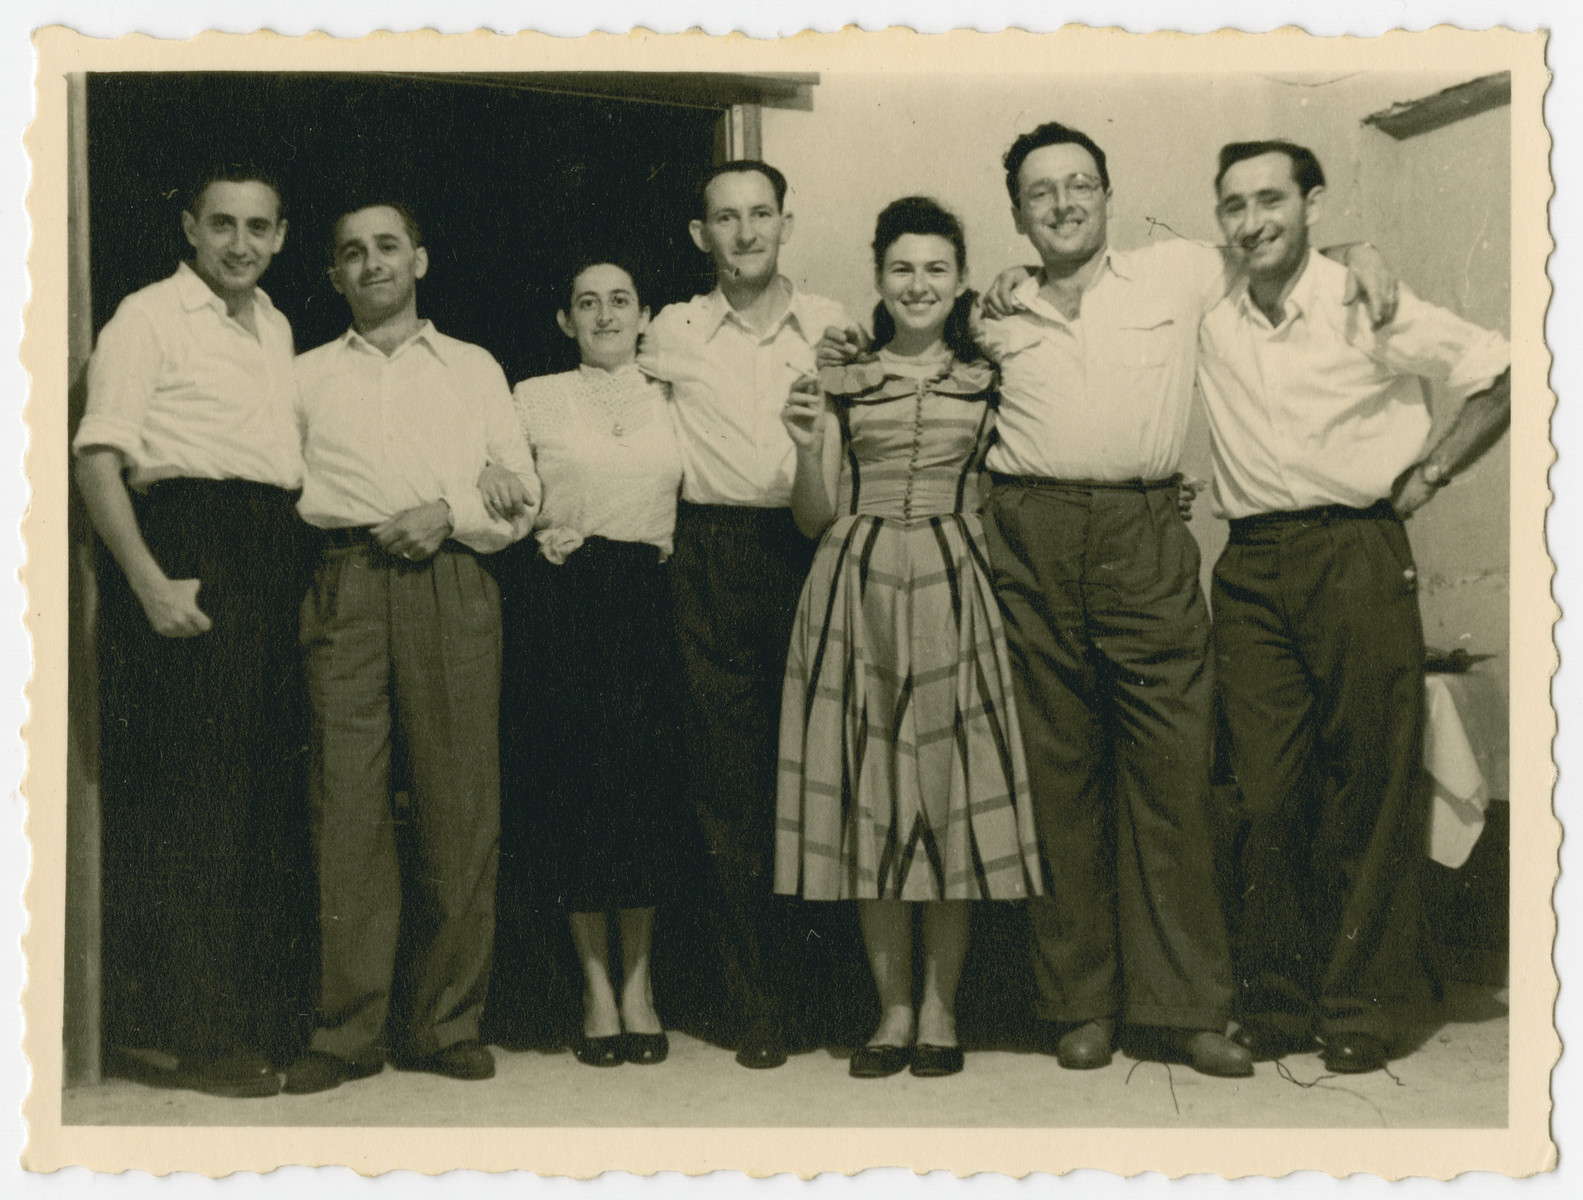 Reunion of former Mauritius detainees in Israel.  From left to right are Max Kopka, Hans Kornitzer, Rachel Makowski, Israel Makowski, Lily Rosenberg Haas, Avi Haas and Hersh Makowski.